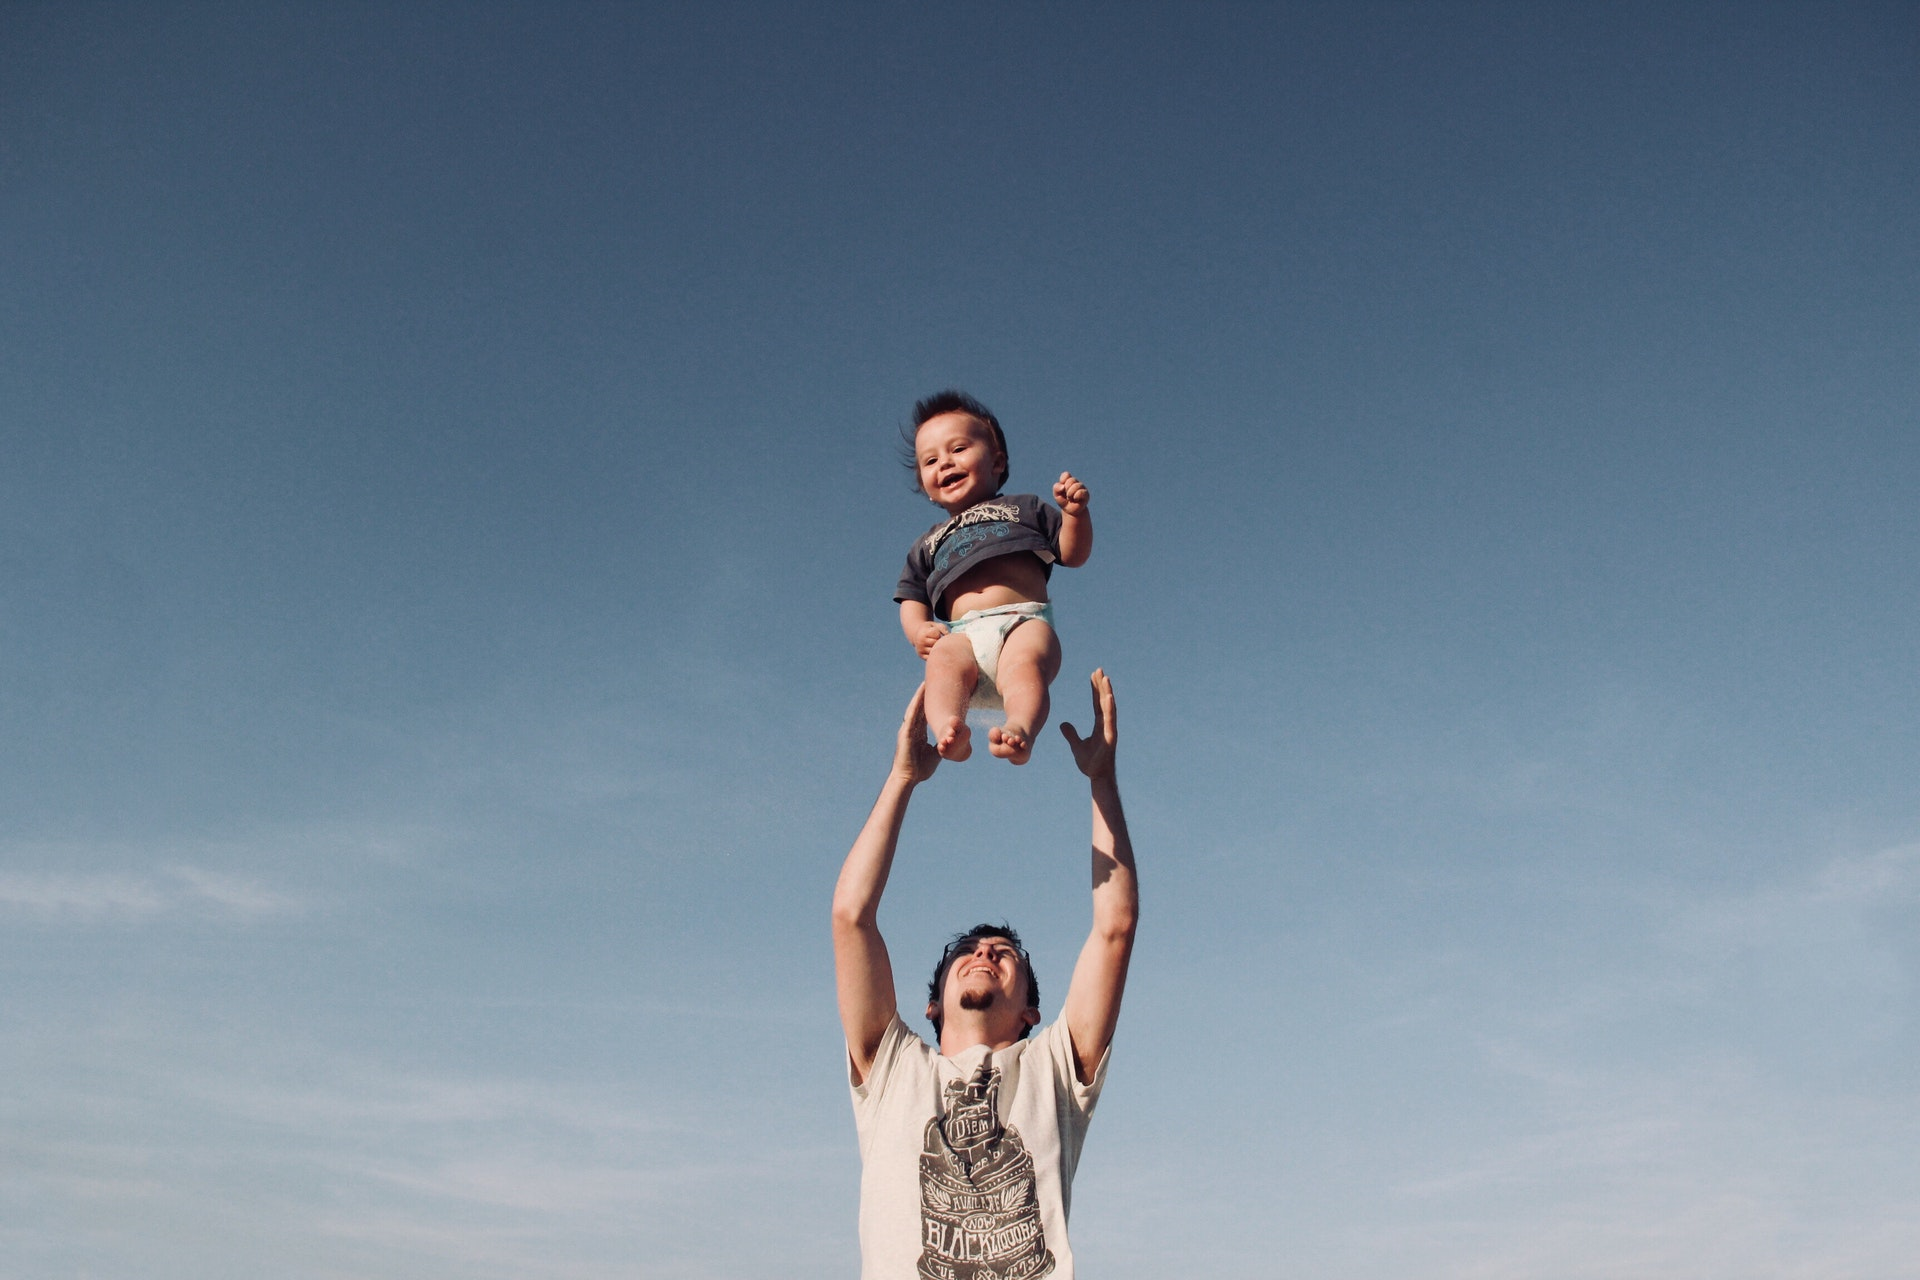 photo of man throwing up baby in air